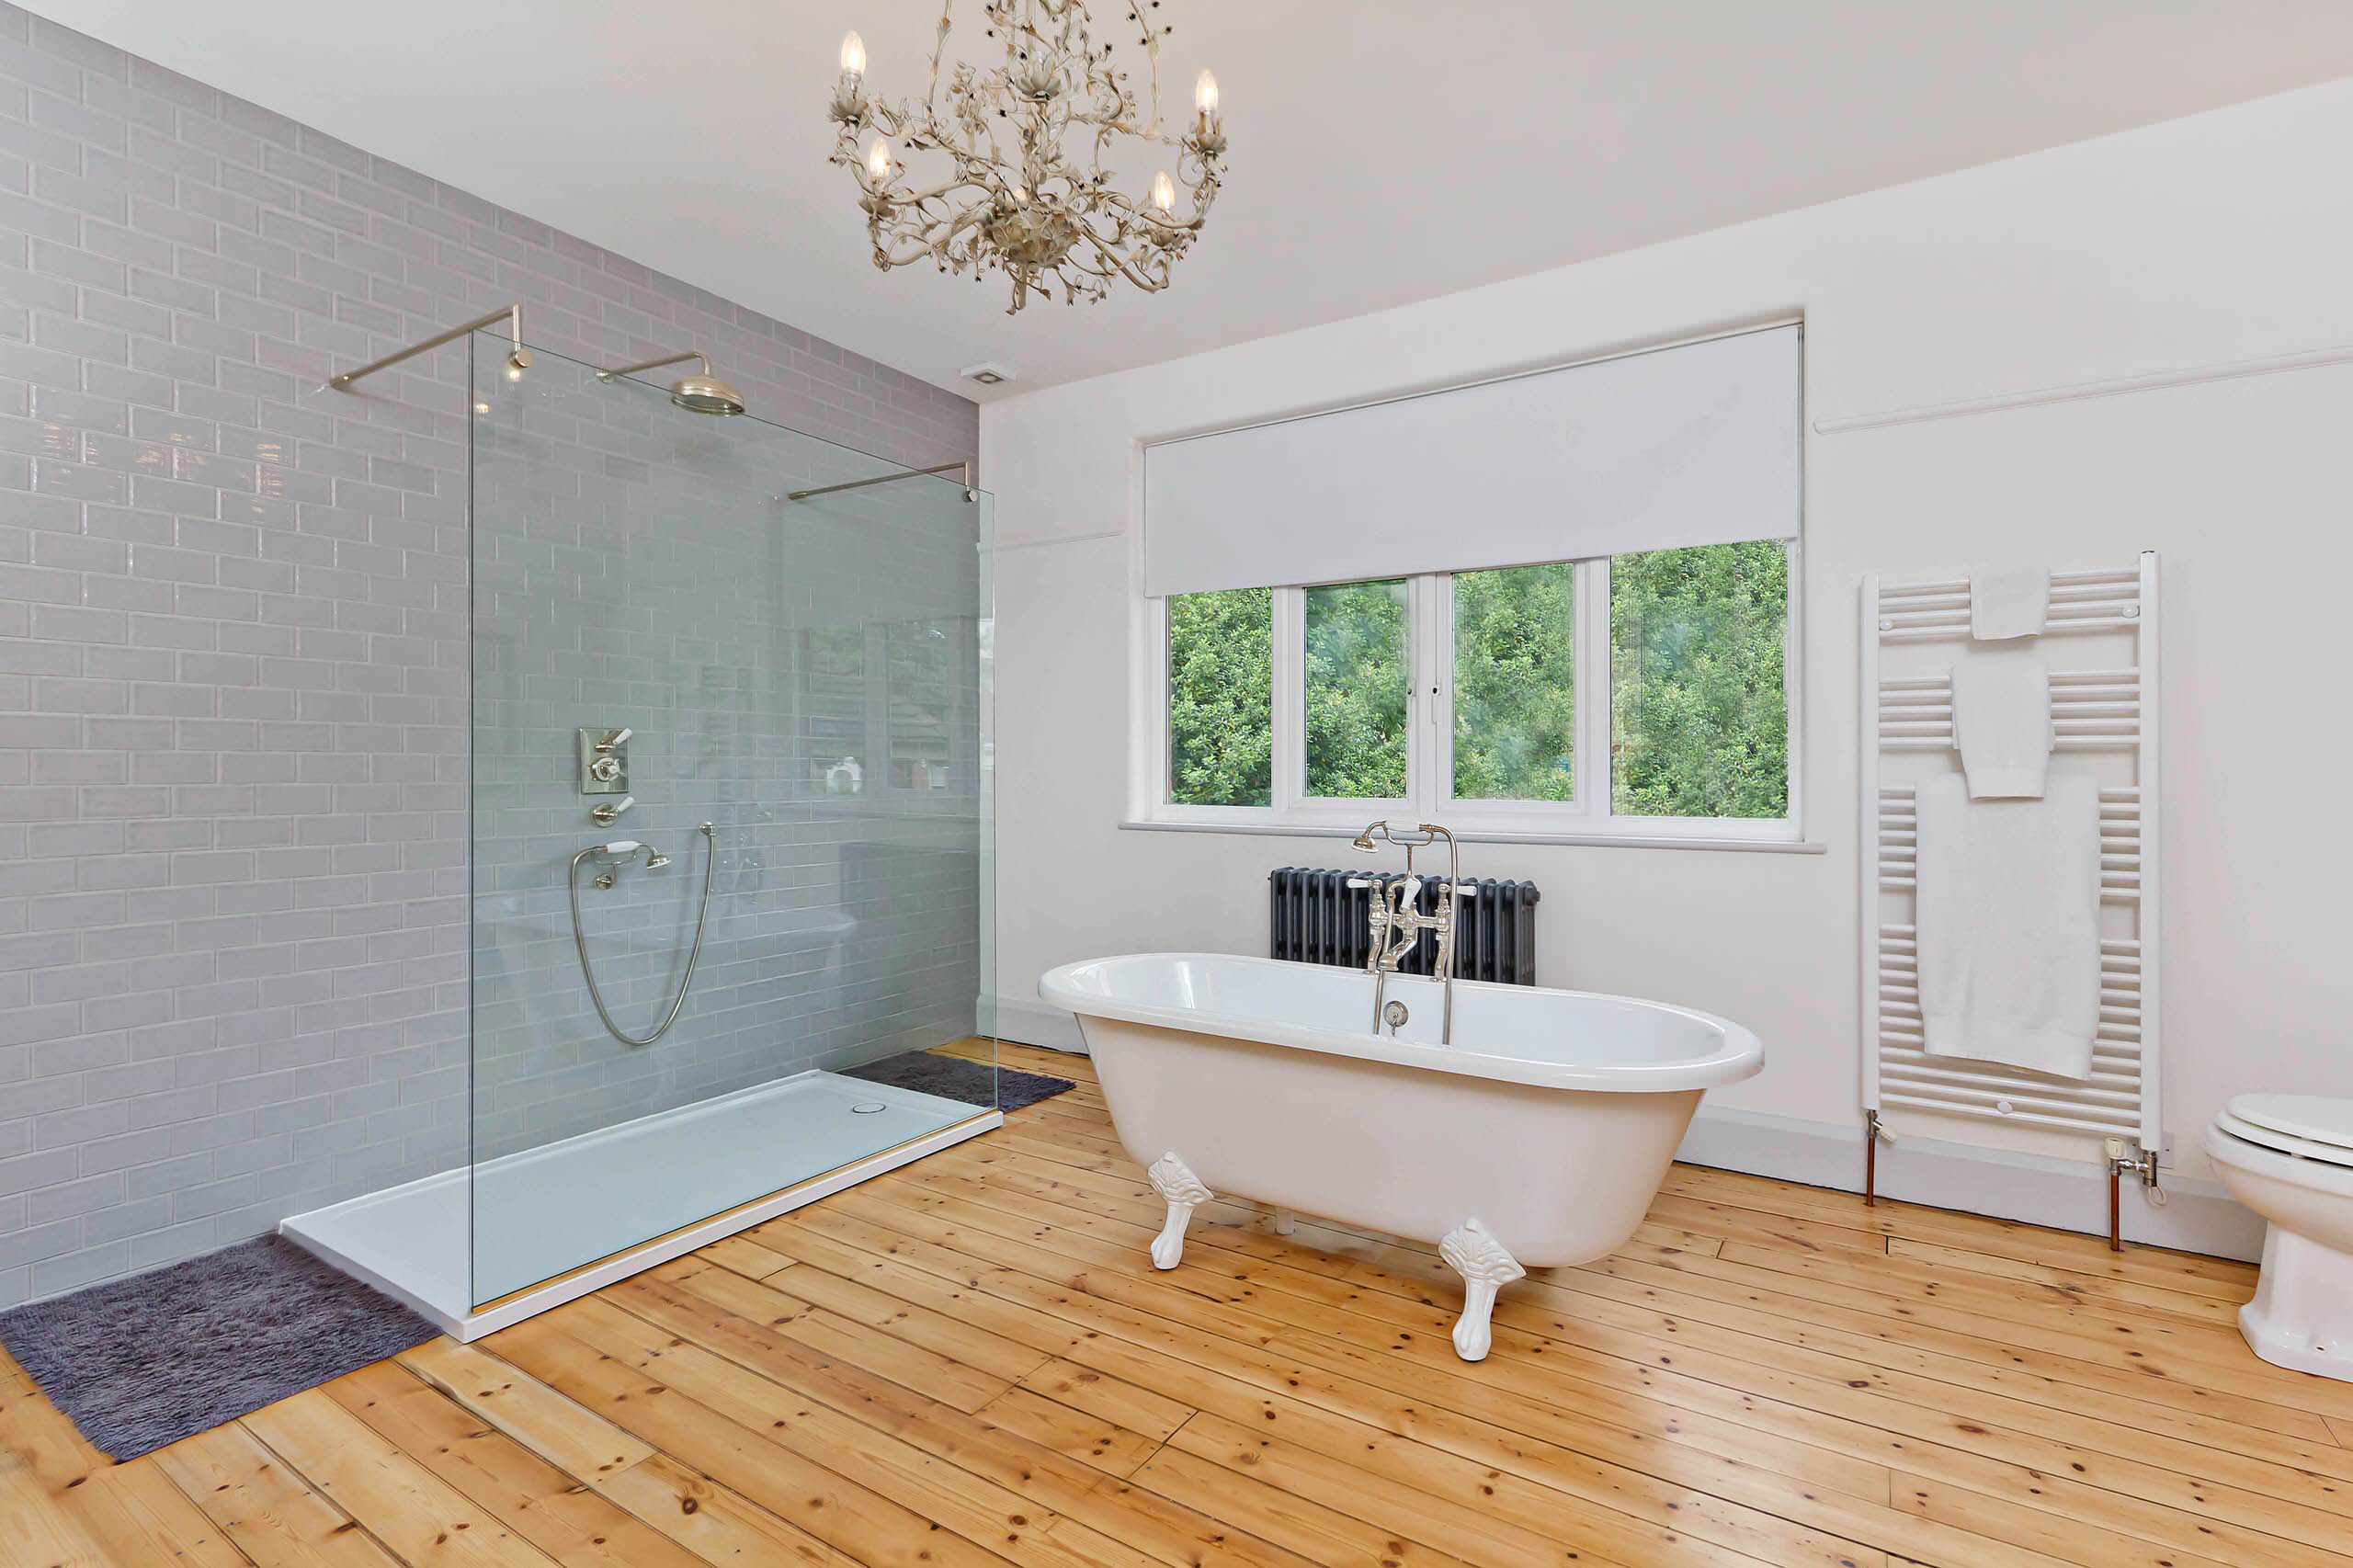 clawfoot tub glass shower enclosure. Bathroom Chandeliers And Window Treatments With Claw Foot Tub Glass  Shower Also Subway Tile Walls Pan Bath Mats Plus Wood Flooring